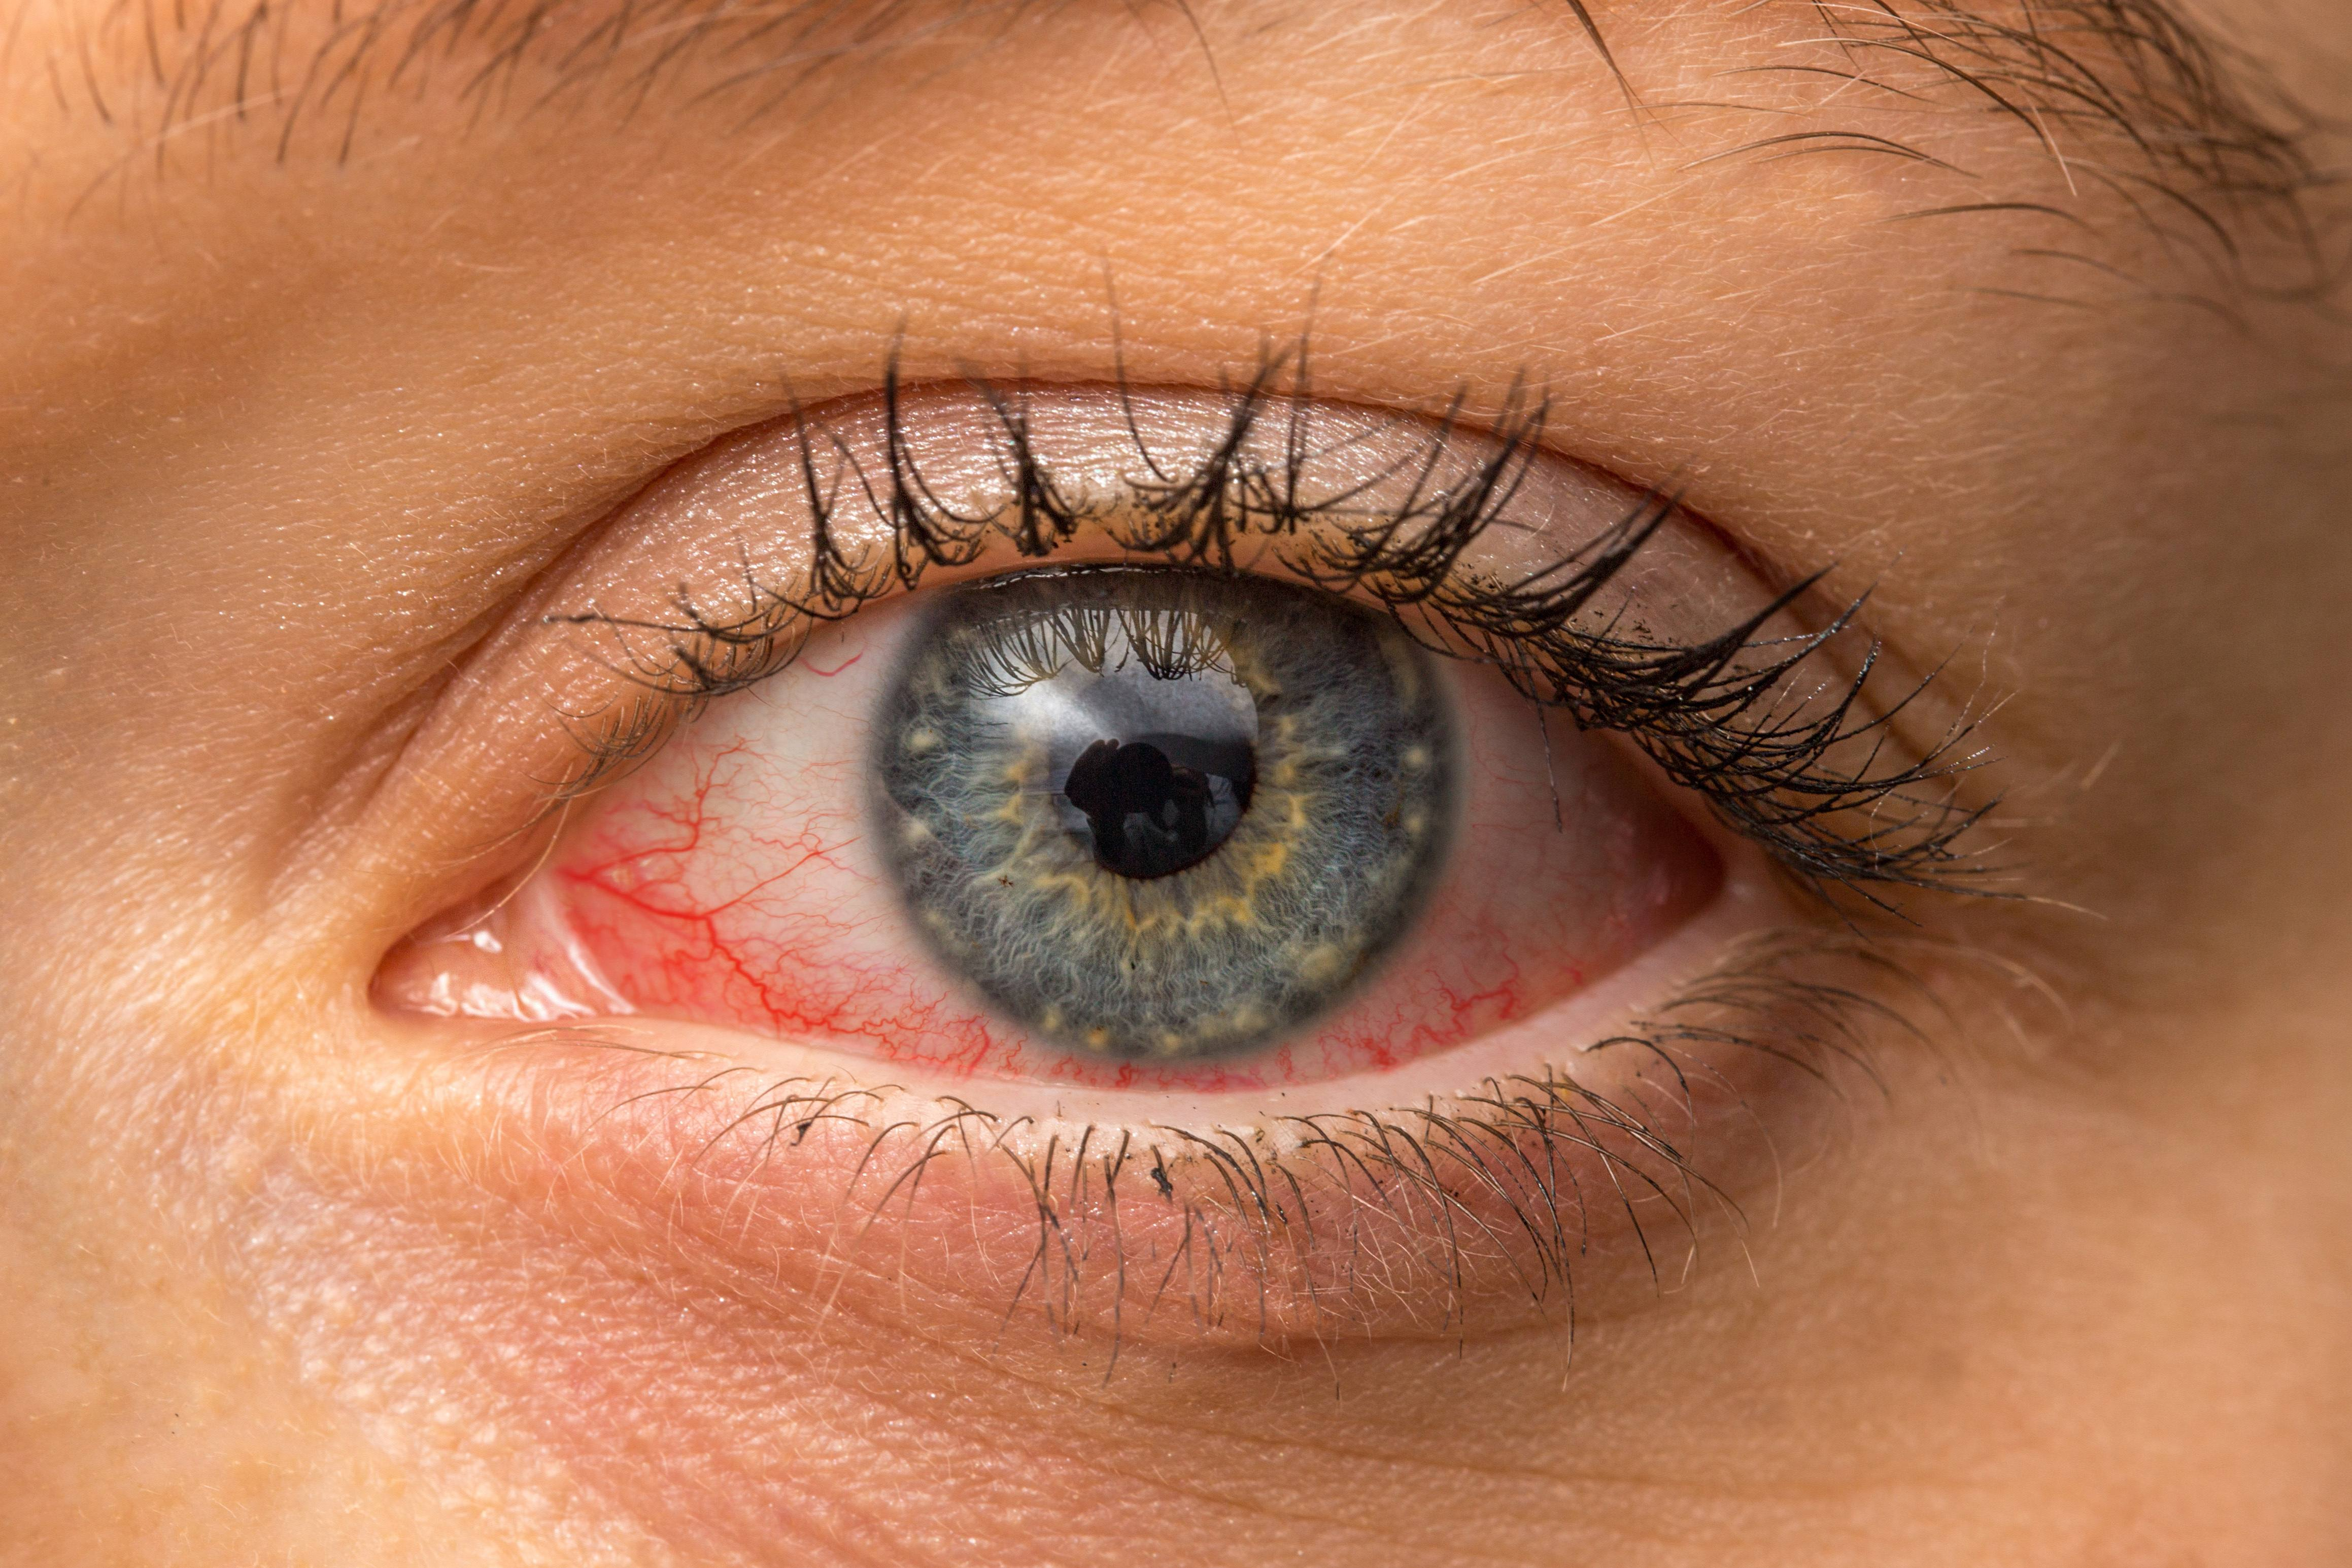 a person with red, sore and itchy eyes, maybe pick eye, conjunctivitis